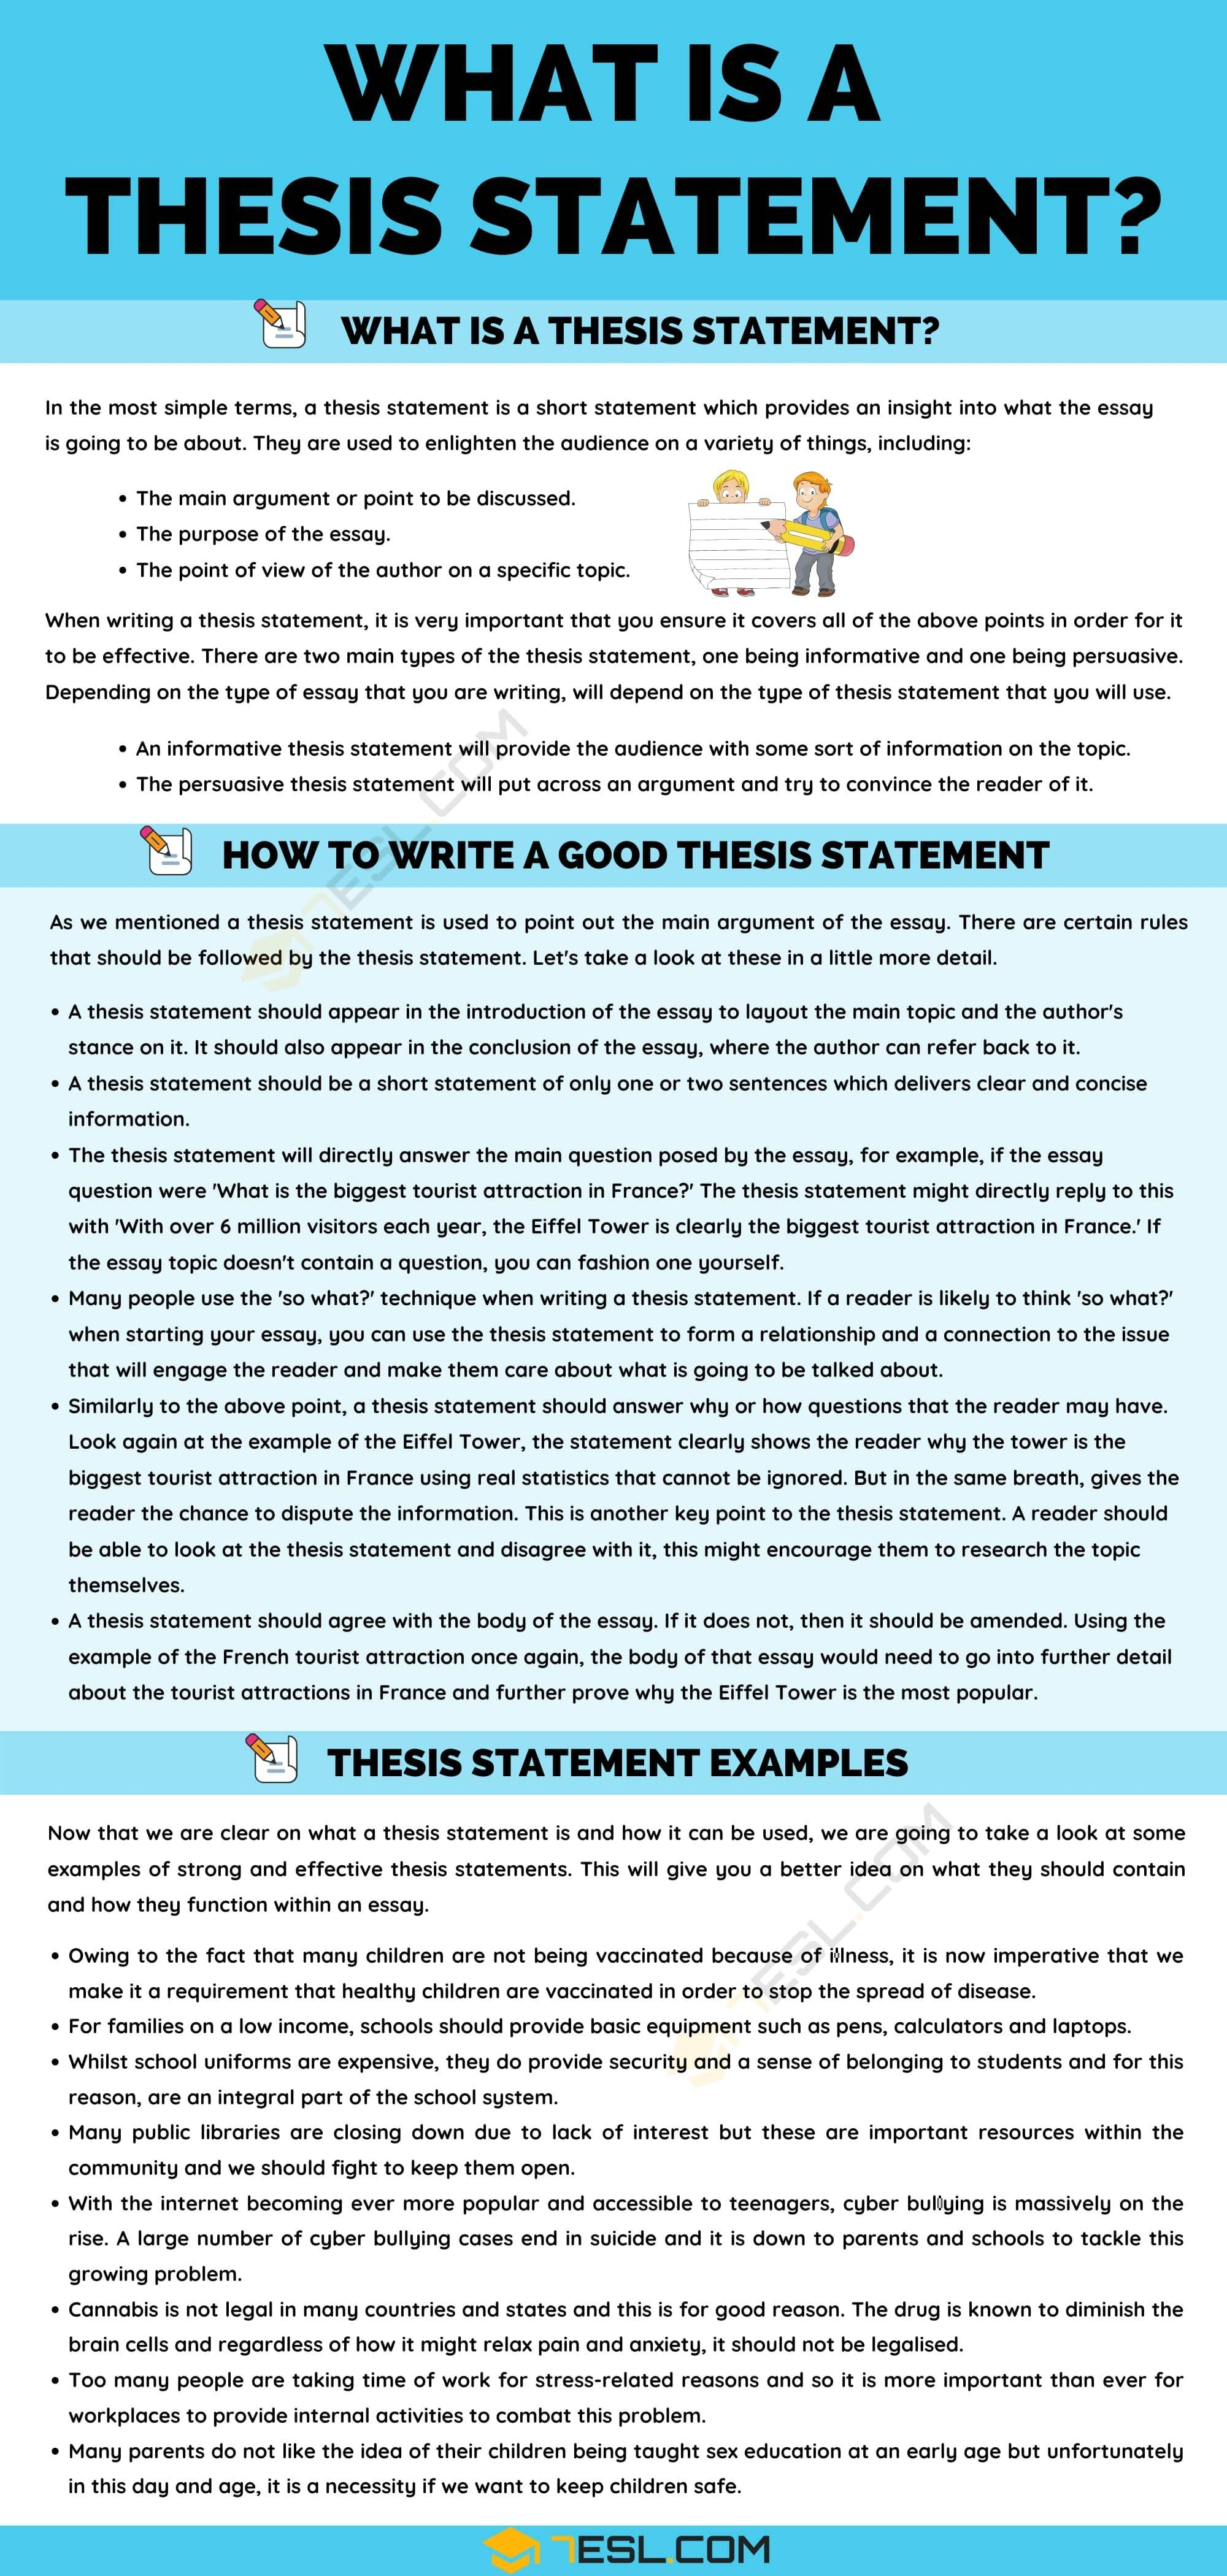 Essay Help Website Essay Help Website Essayhelpwebsite In 2021 Thesis Statement Informative Essay Essay Writing Skills